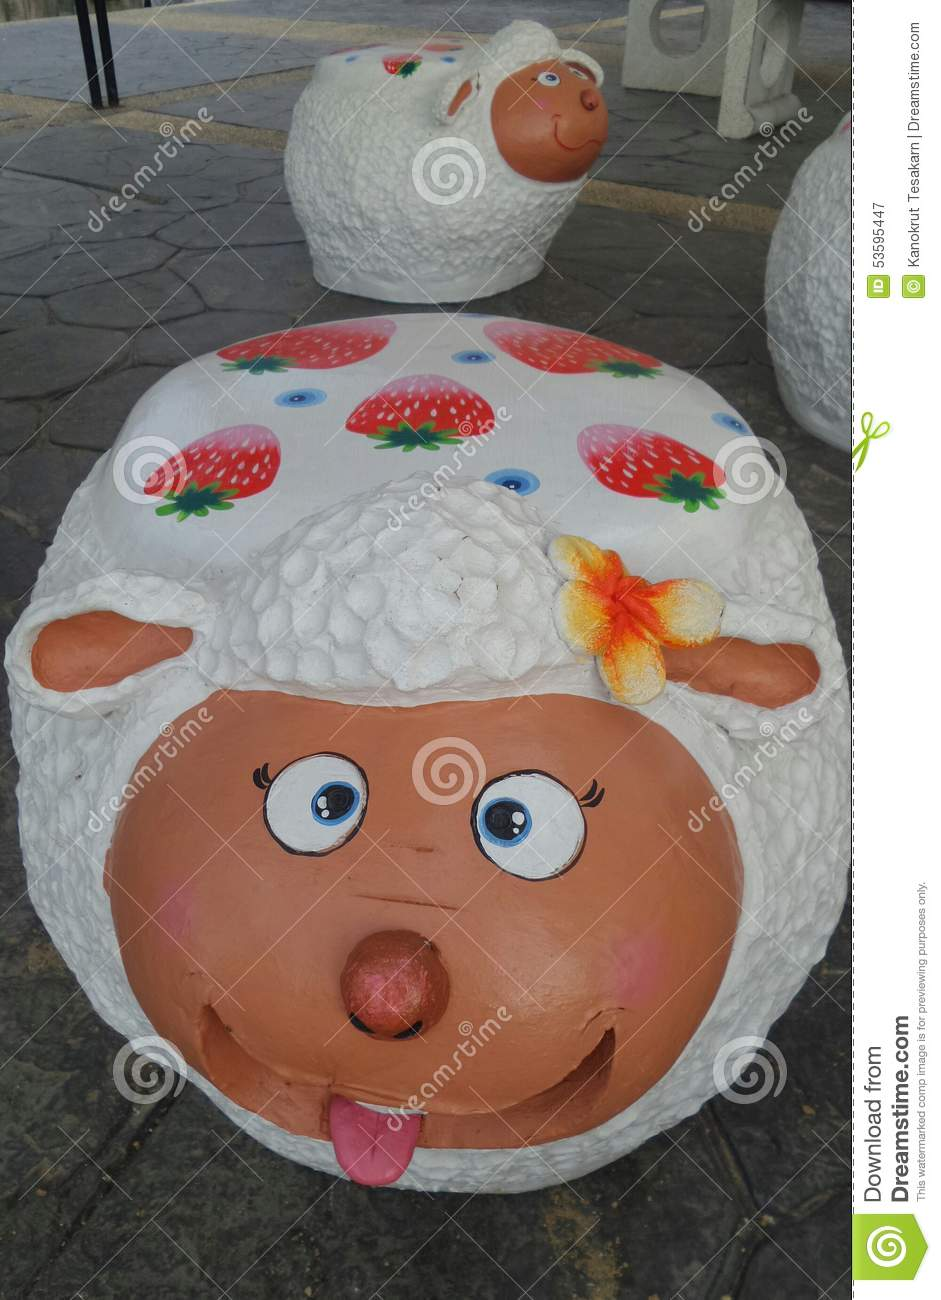 Marvelous Happy Sheep Garden Stool Stock Image Image Of Garden 53595447 Pabps2019 Chair Design Images Pabps2019Com